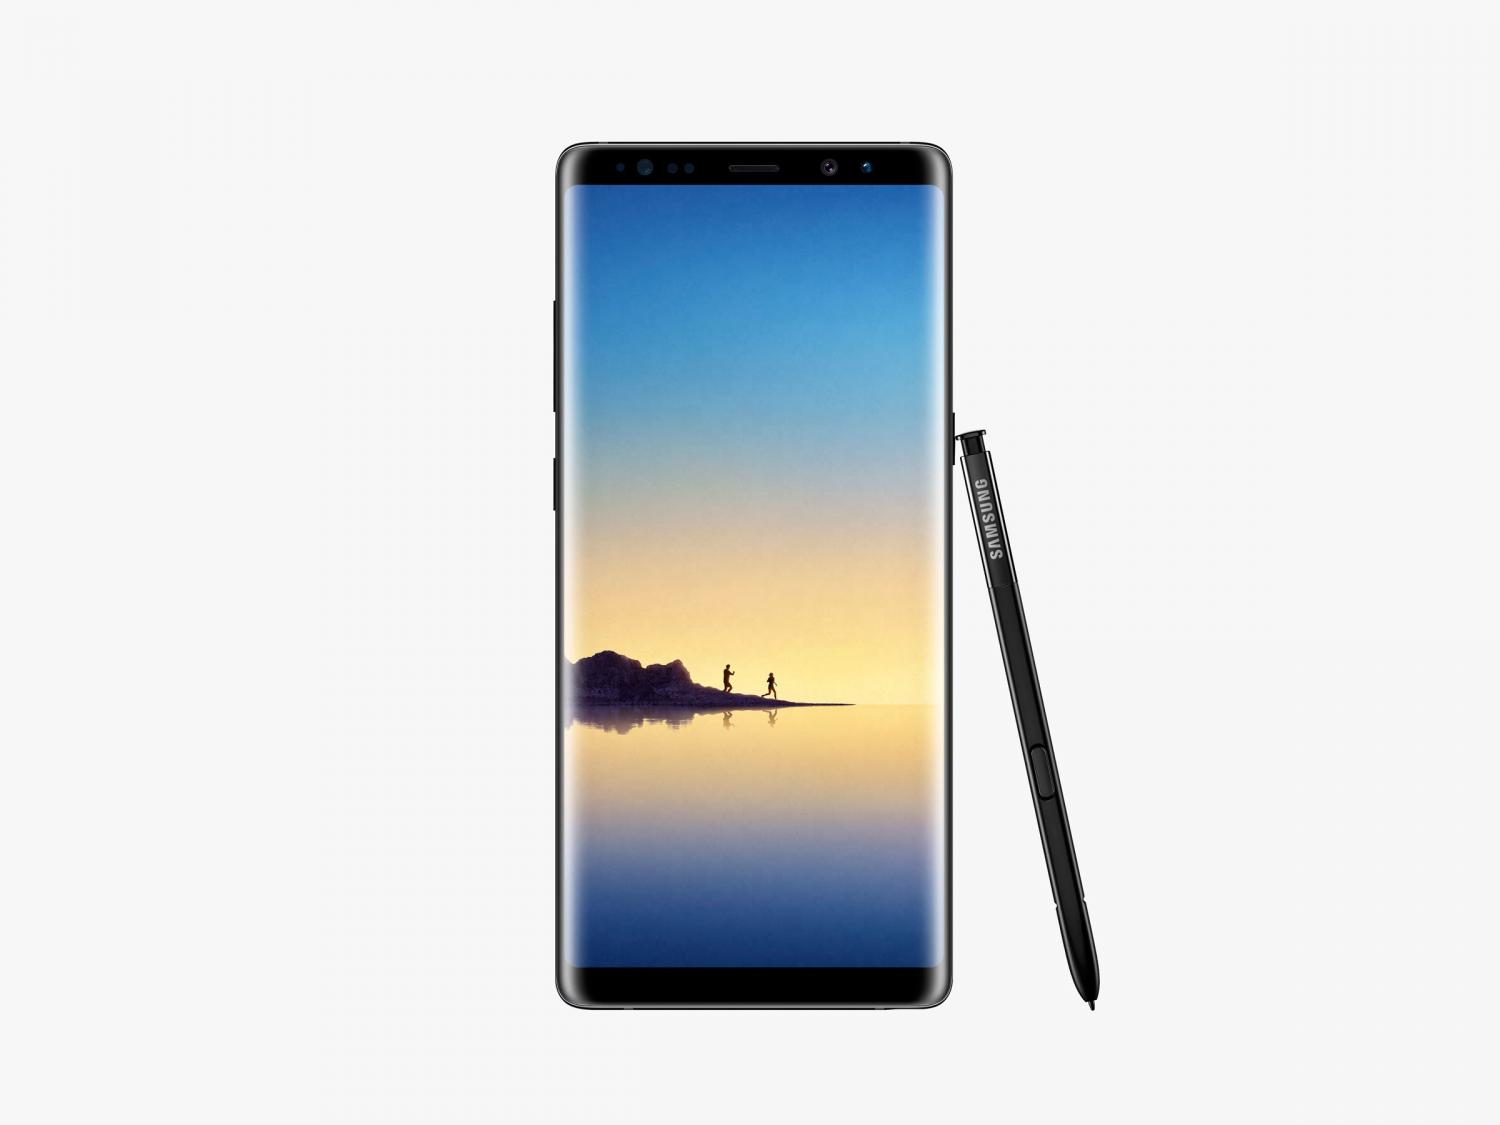 There may be a Galaxy Note 8 variant with 4GB of RAM